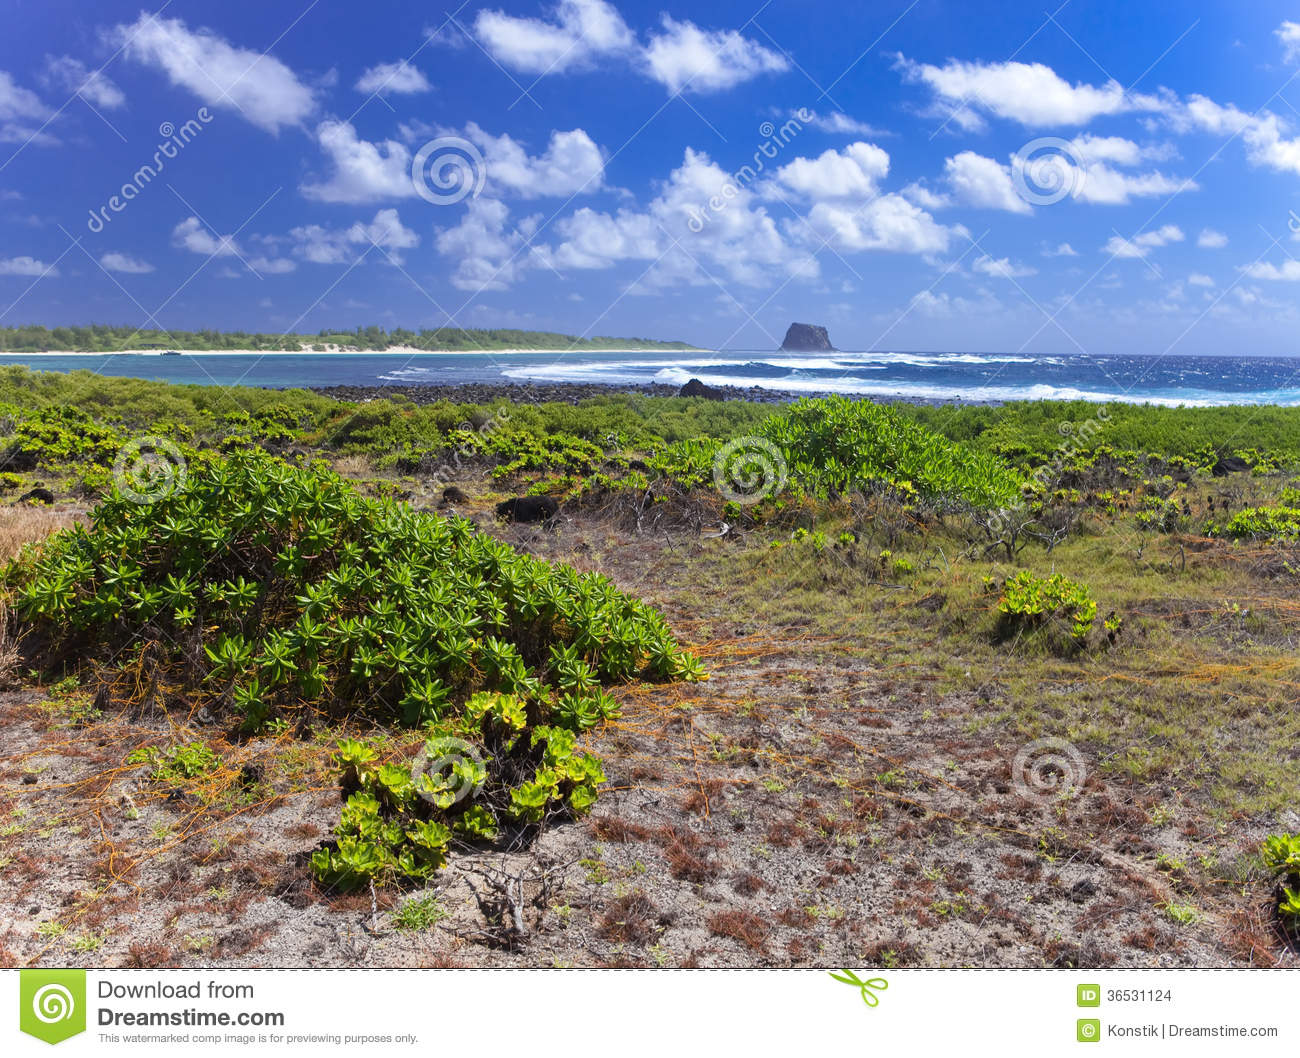 title mauritius island indian ocean likely affected climat Countries most exposed to natural hazardmauritius has a climate change action plan for addressing  in the south west indian ocean, consisting of the main island .